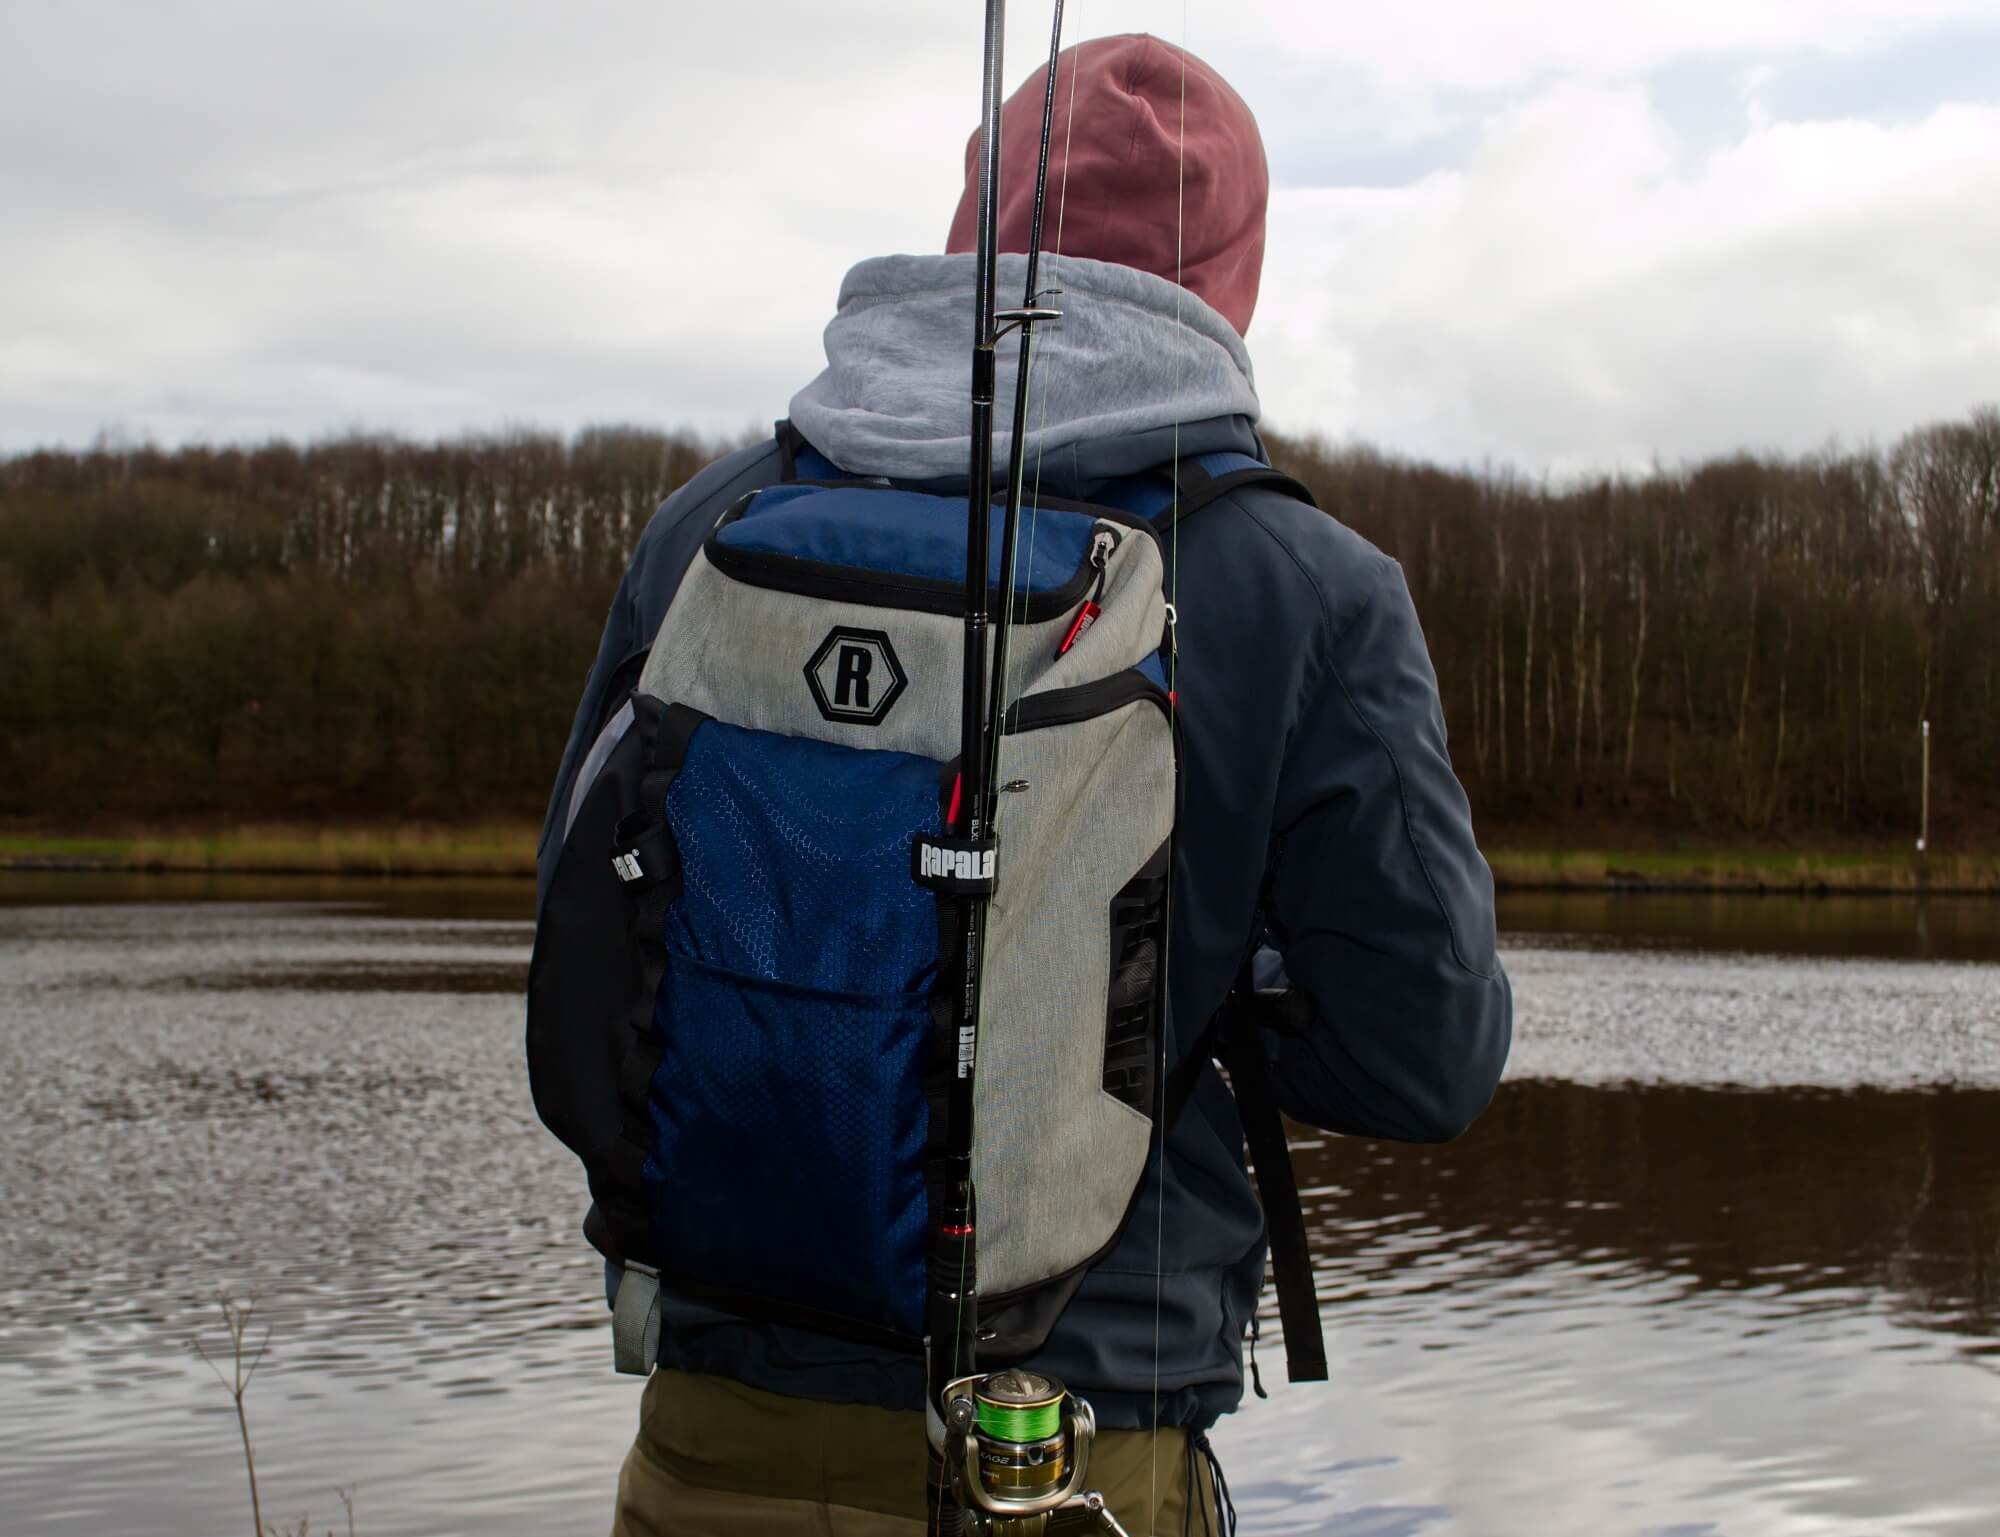 Review: Rapala CountDown Backpack